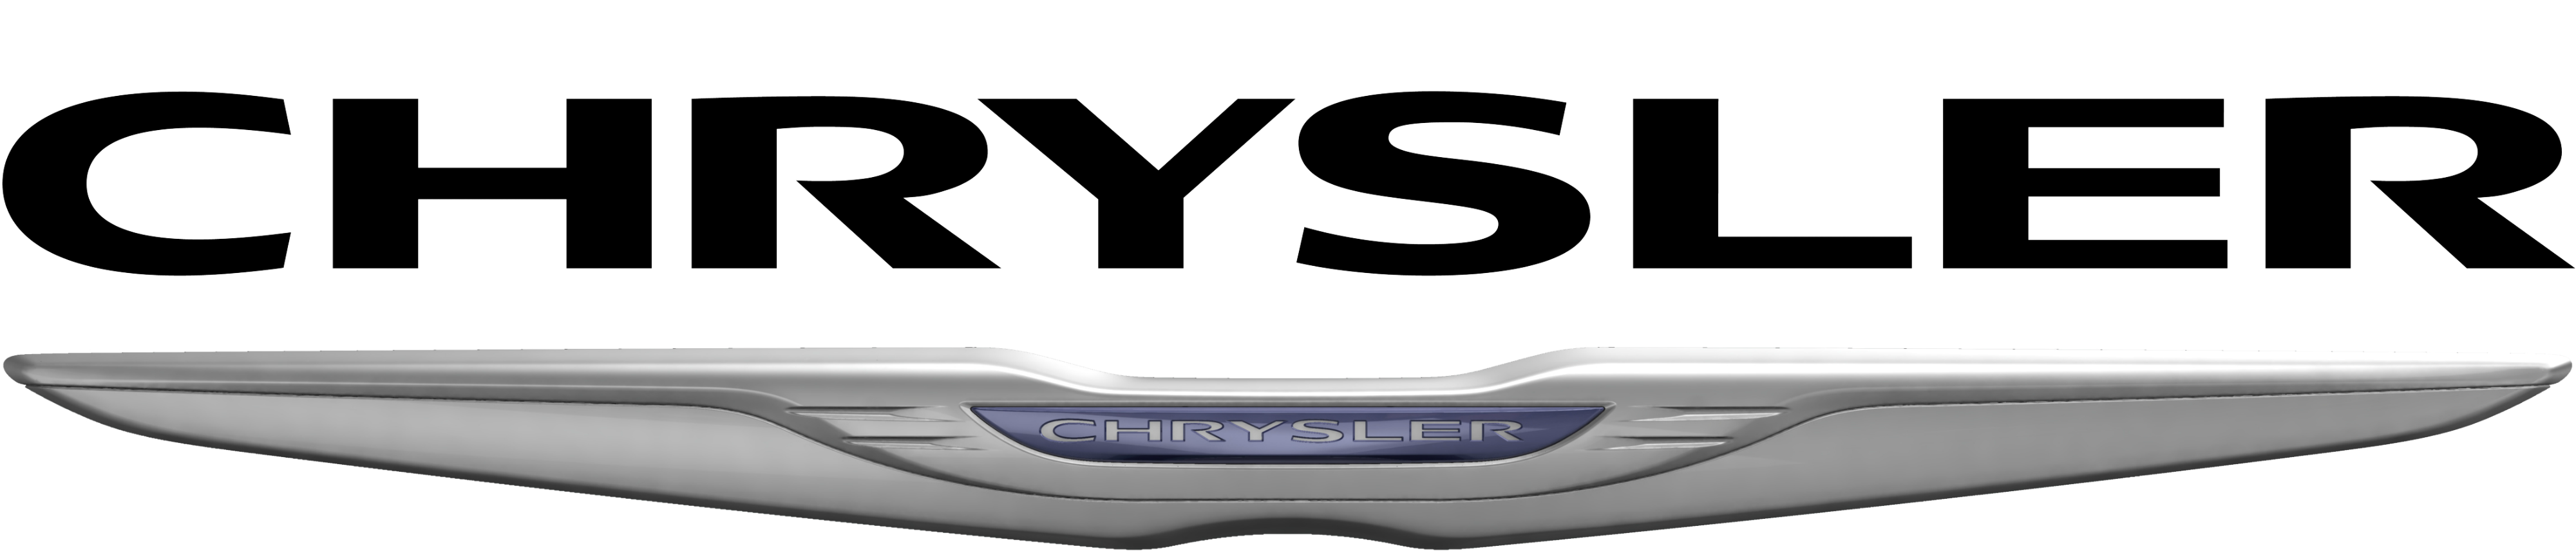 Chrysler Logo Chrysler Car Symbol Meaning And History Car Brand - True meaning brand names